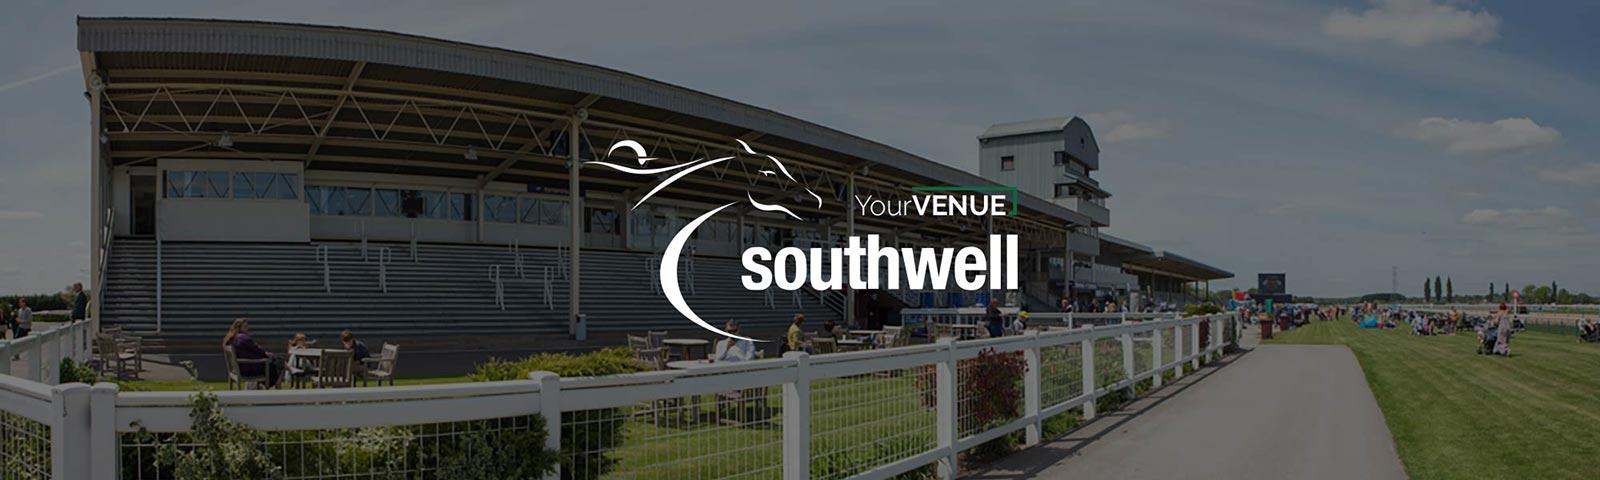 YourVENUE offering great outdoor space at Southwell Racecourse